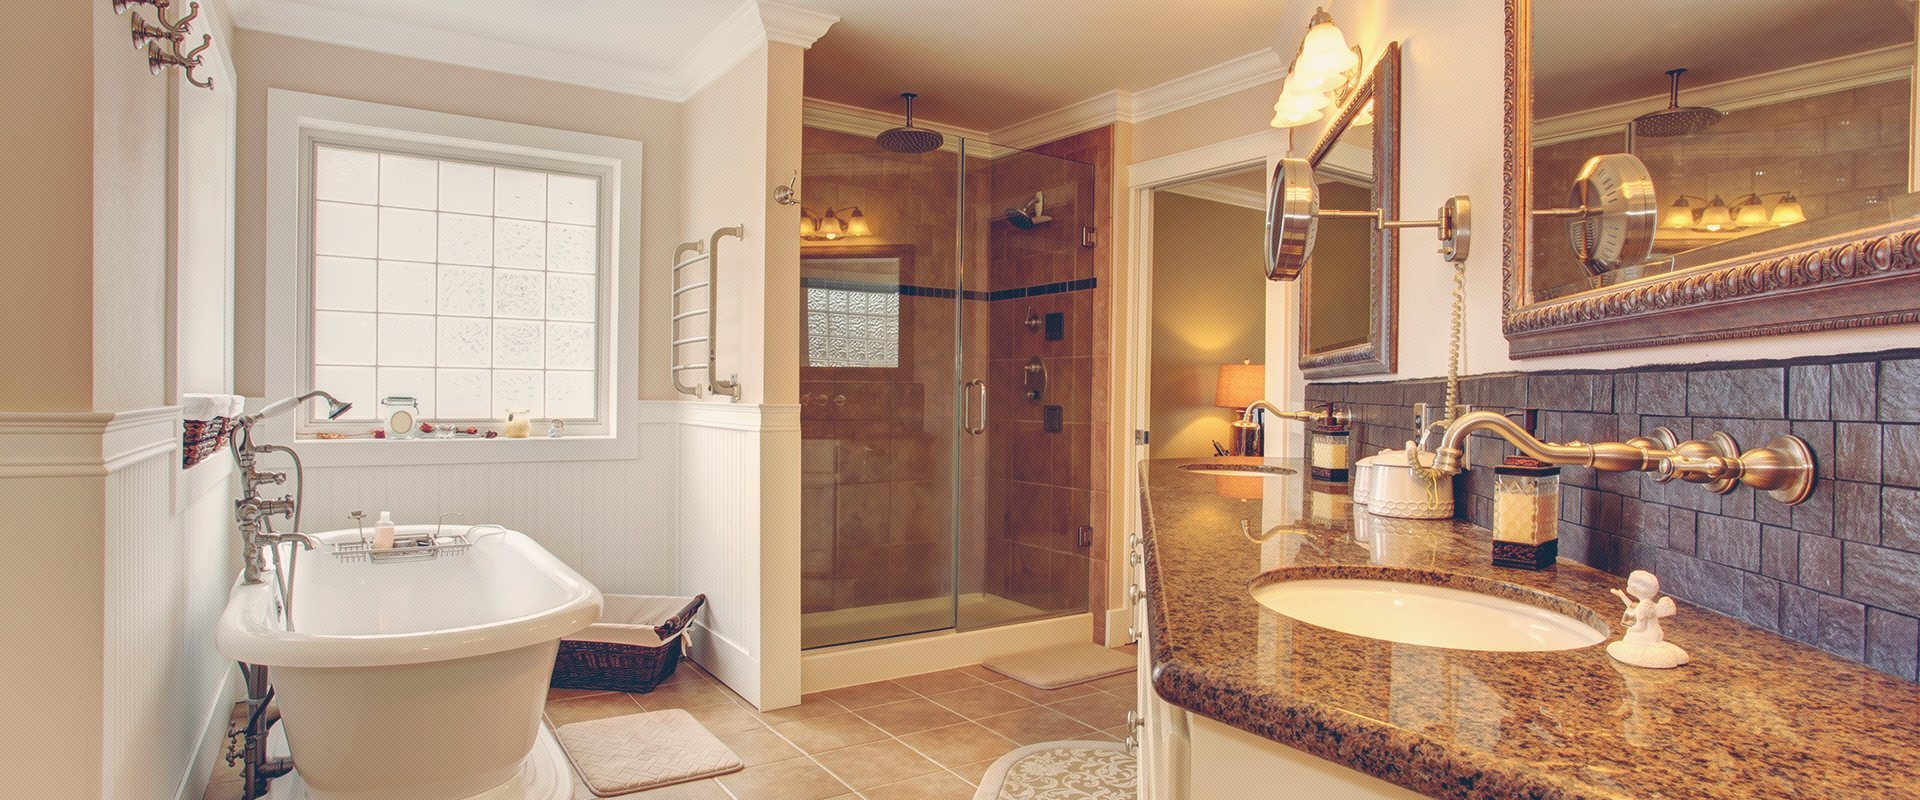 Bespoke Bathroom Design And Installation In Stockport